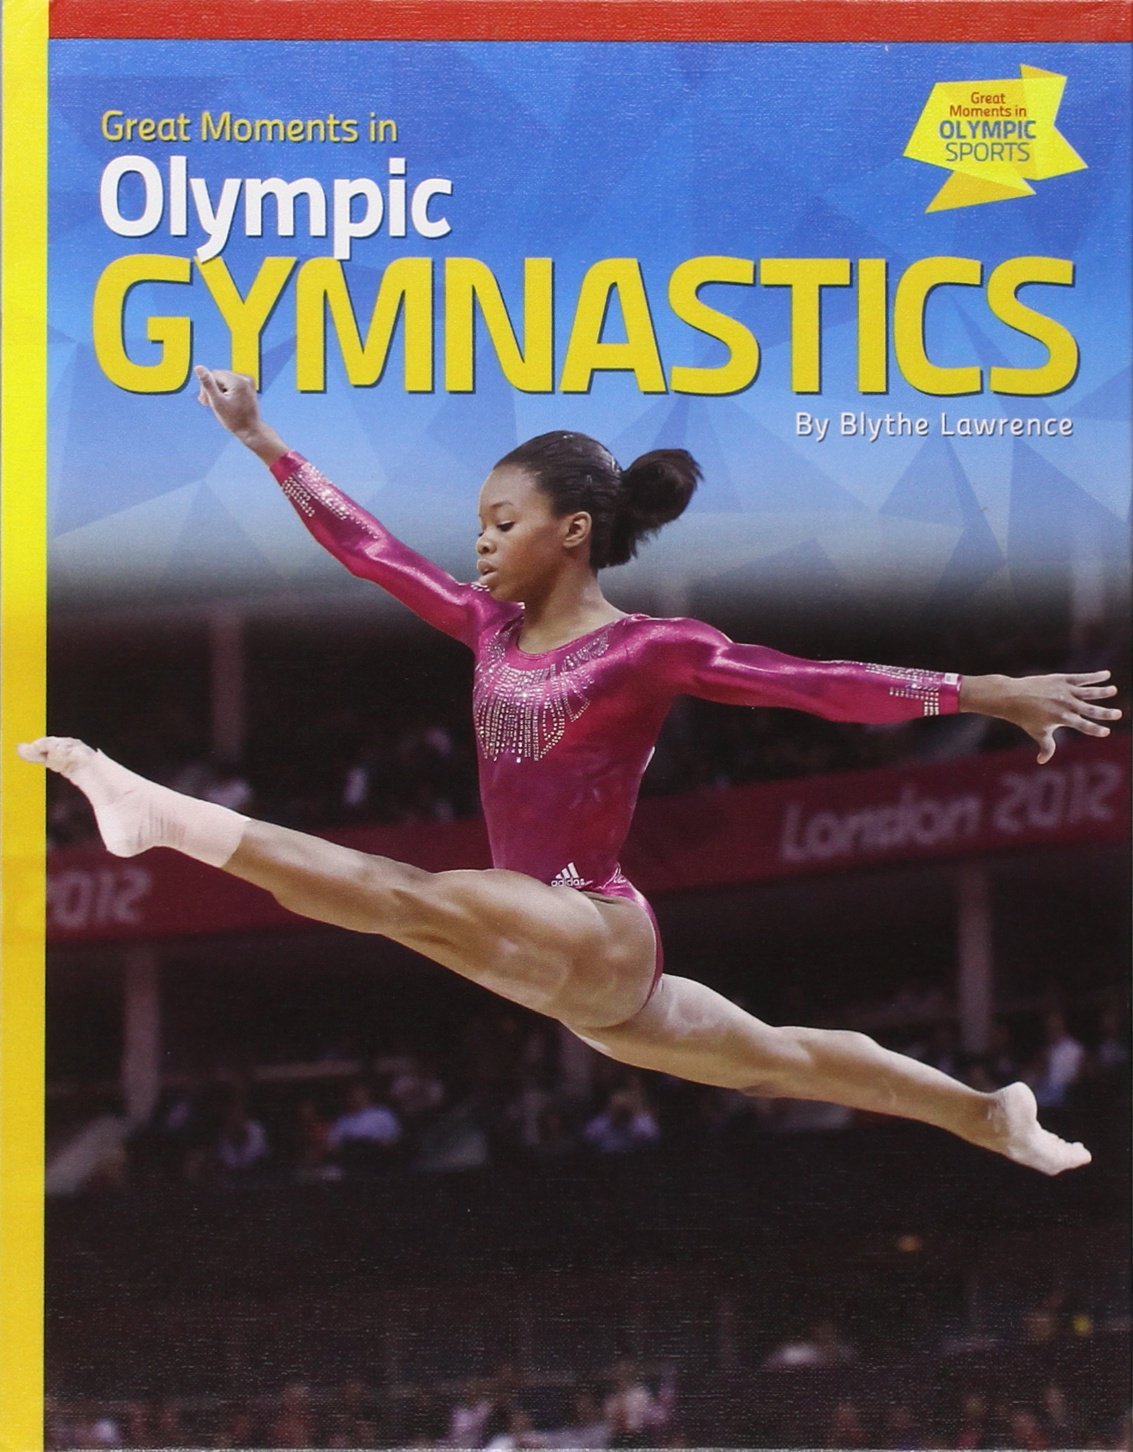 Great Moments in Olympic Gymnastics (Great Moments in Olympic Sports)